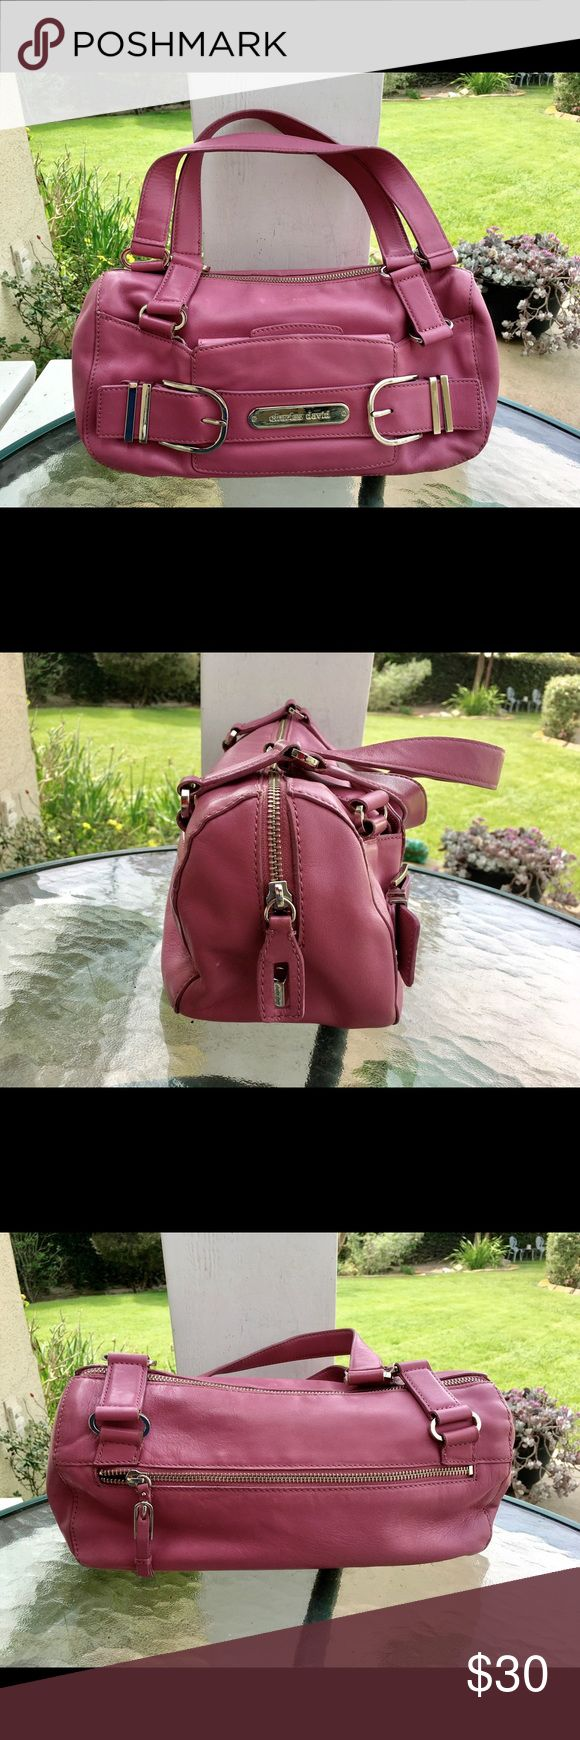 """Charles David Rose Pink Leather Handbag Dimensions: 6"""" height; 12"""" length; 5"""" depth; 8"""" strap drop. Double strap. Genuine leather in a beautiful rose pink color. Bag shows some minimal wear. Charles David Bags Satchels"""